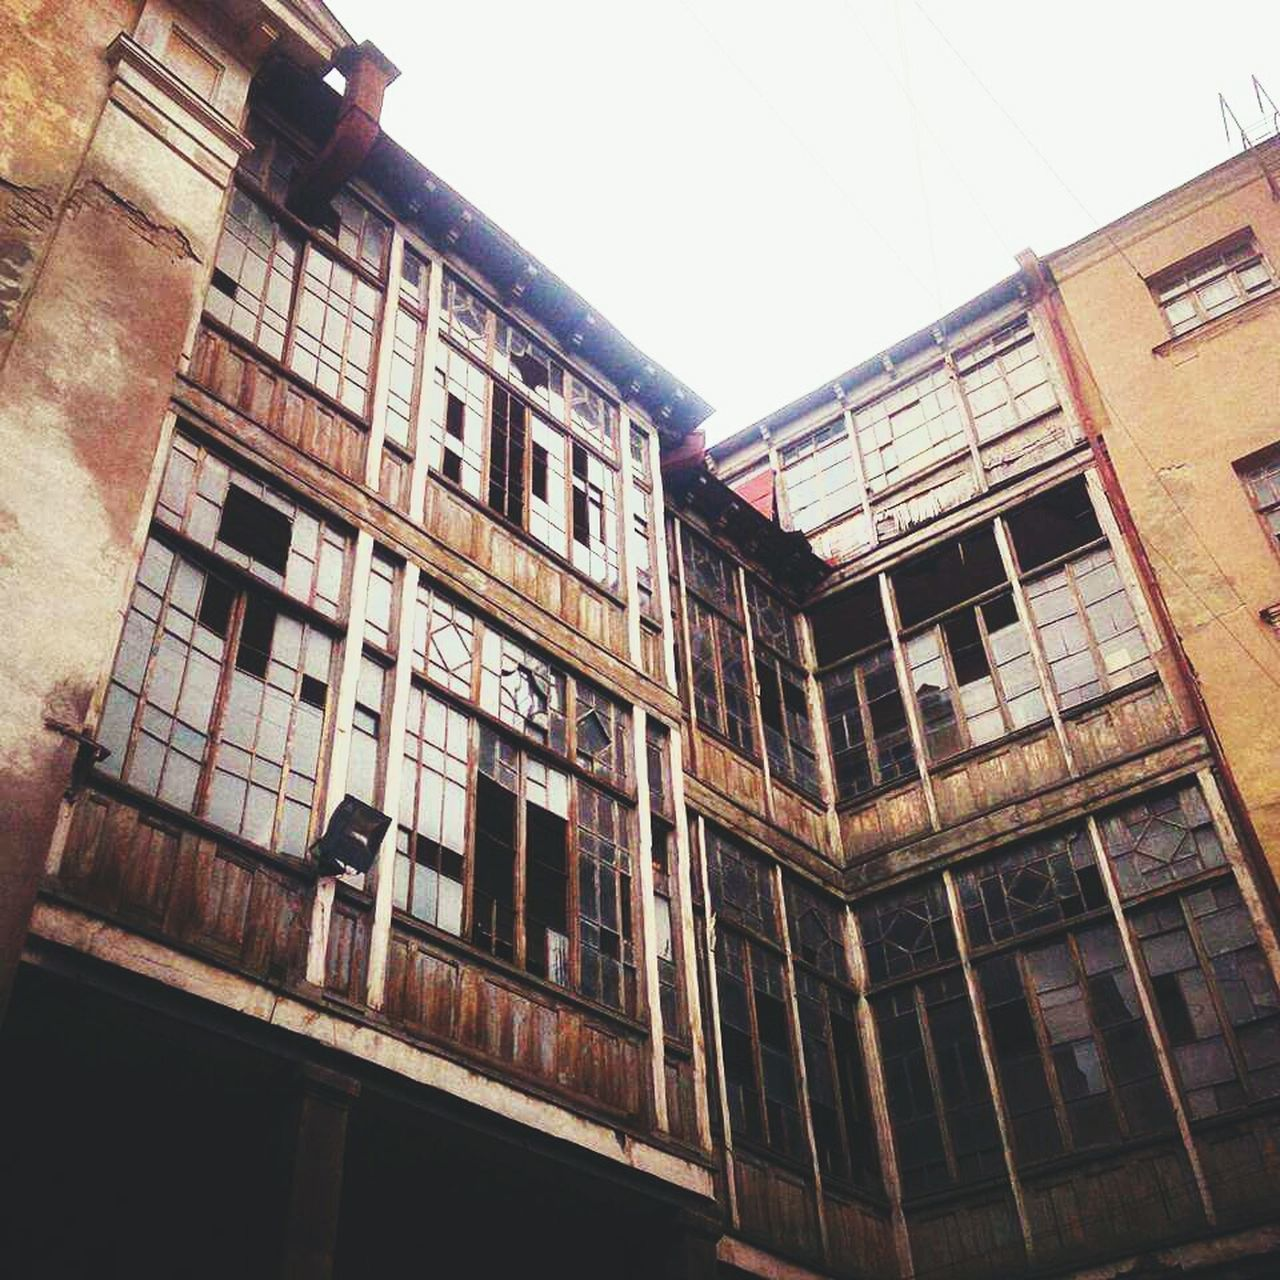 Low Angle View Building Exterior Architecture Facade Building Old Buildings No People Outdoors